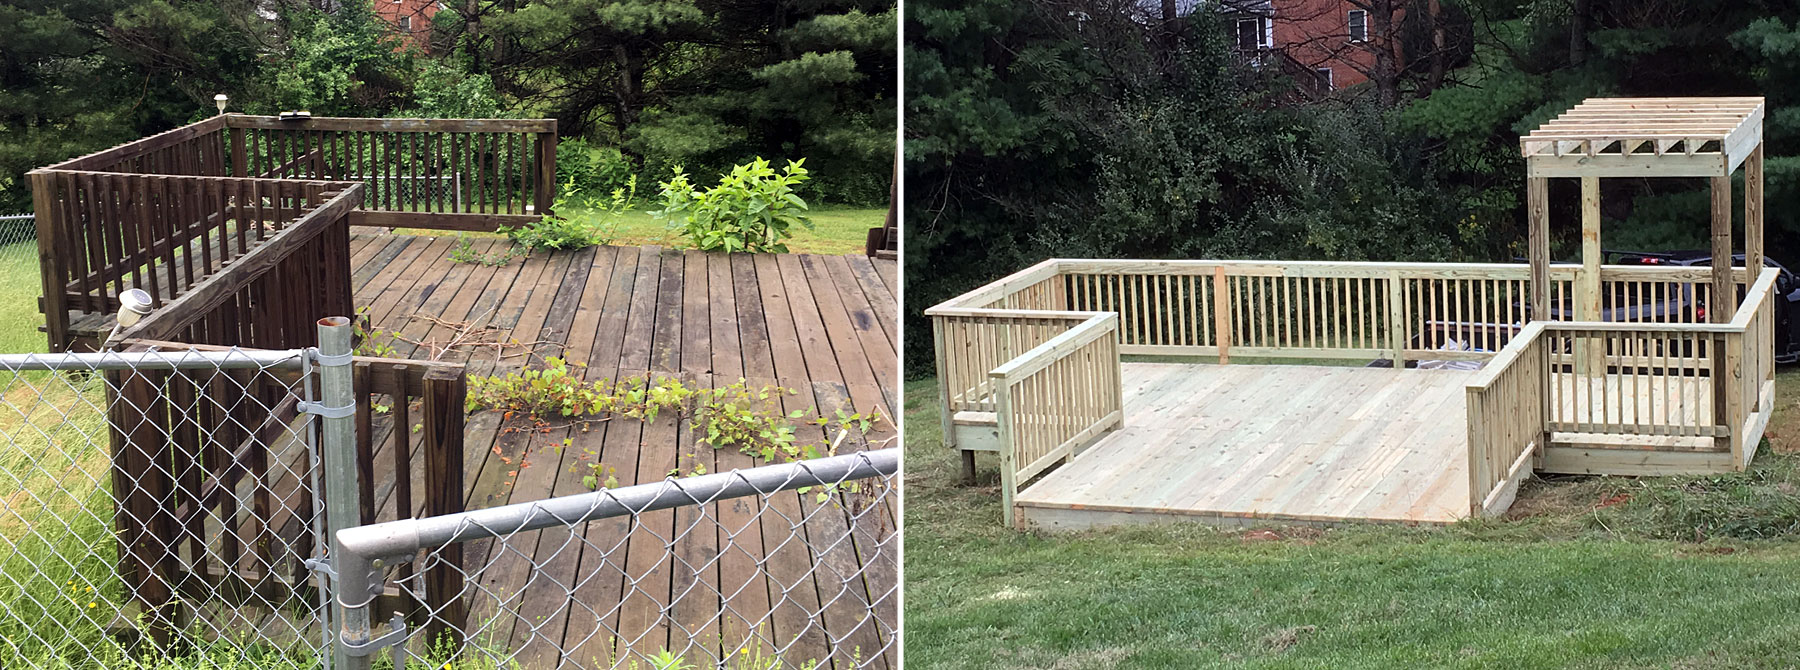 Deck Remodel Before & After